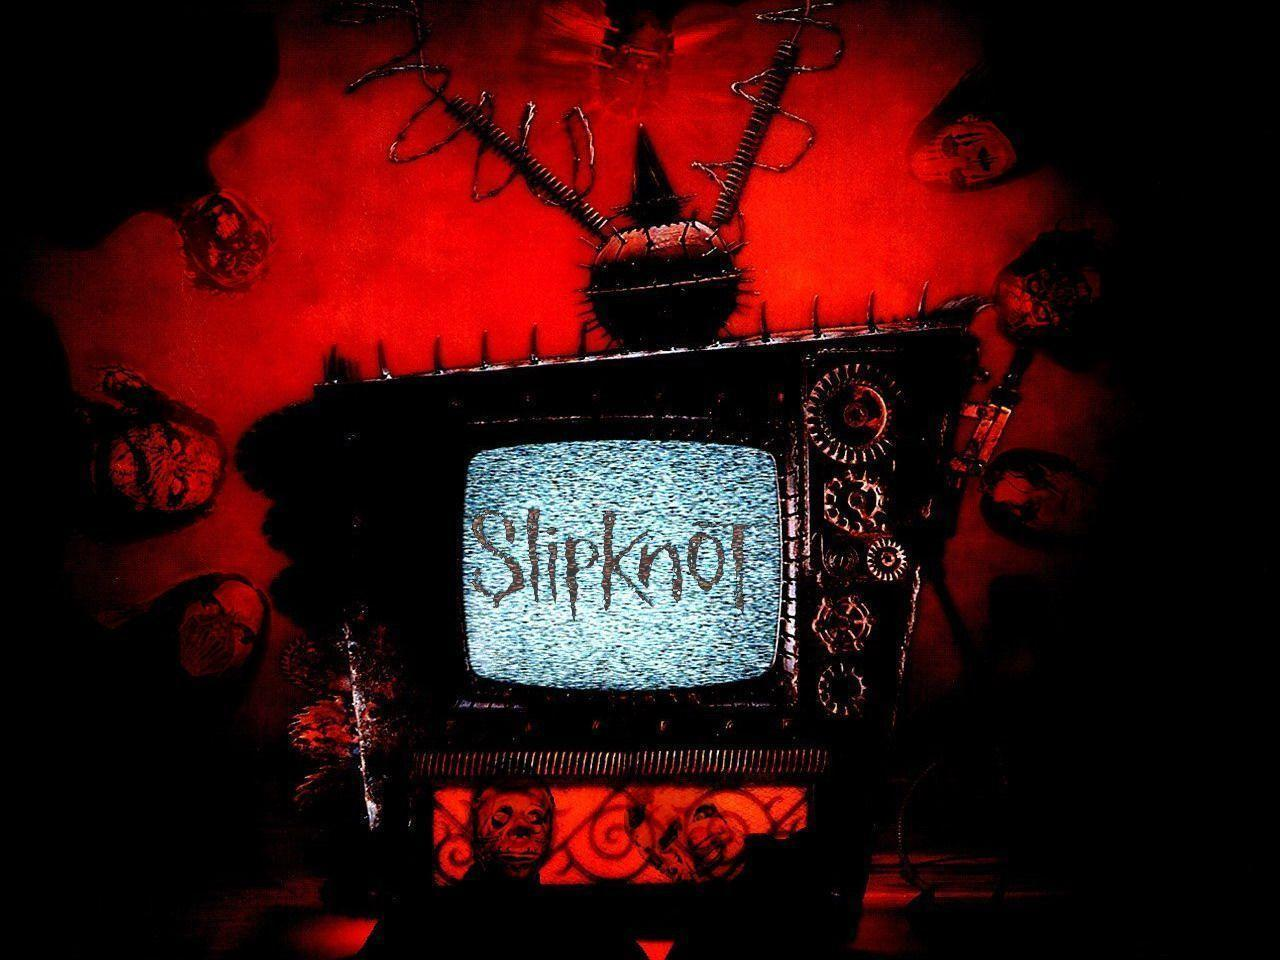 Free Slipknot Wallpapers - Wallpaper Cave